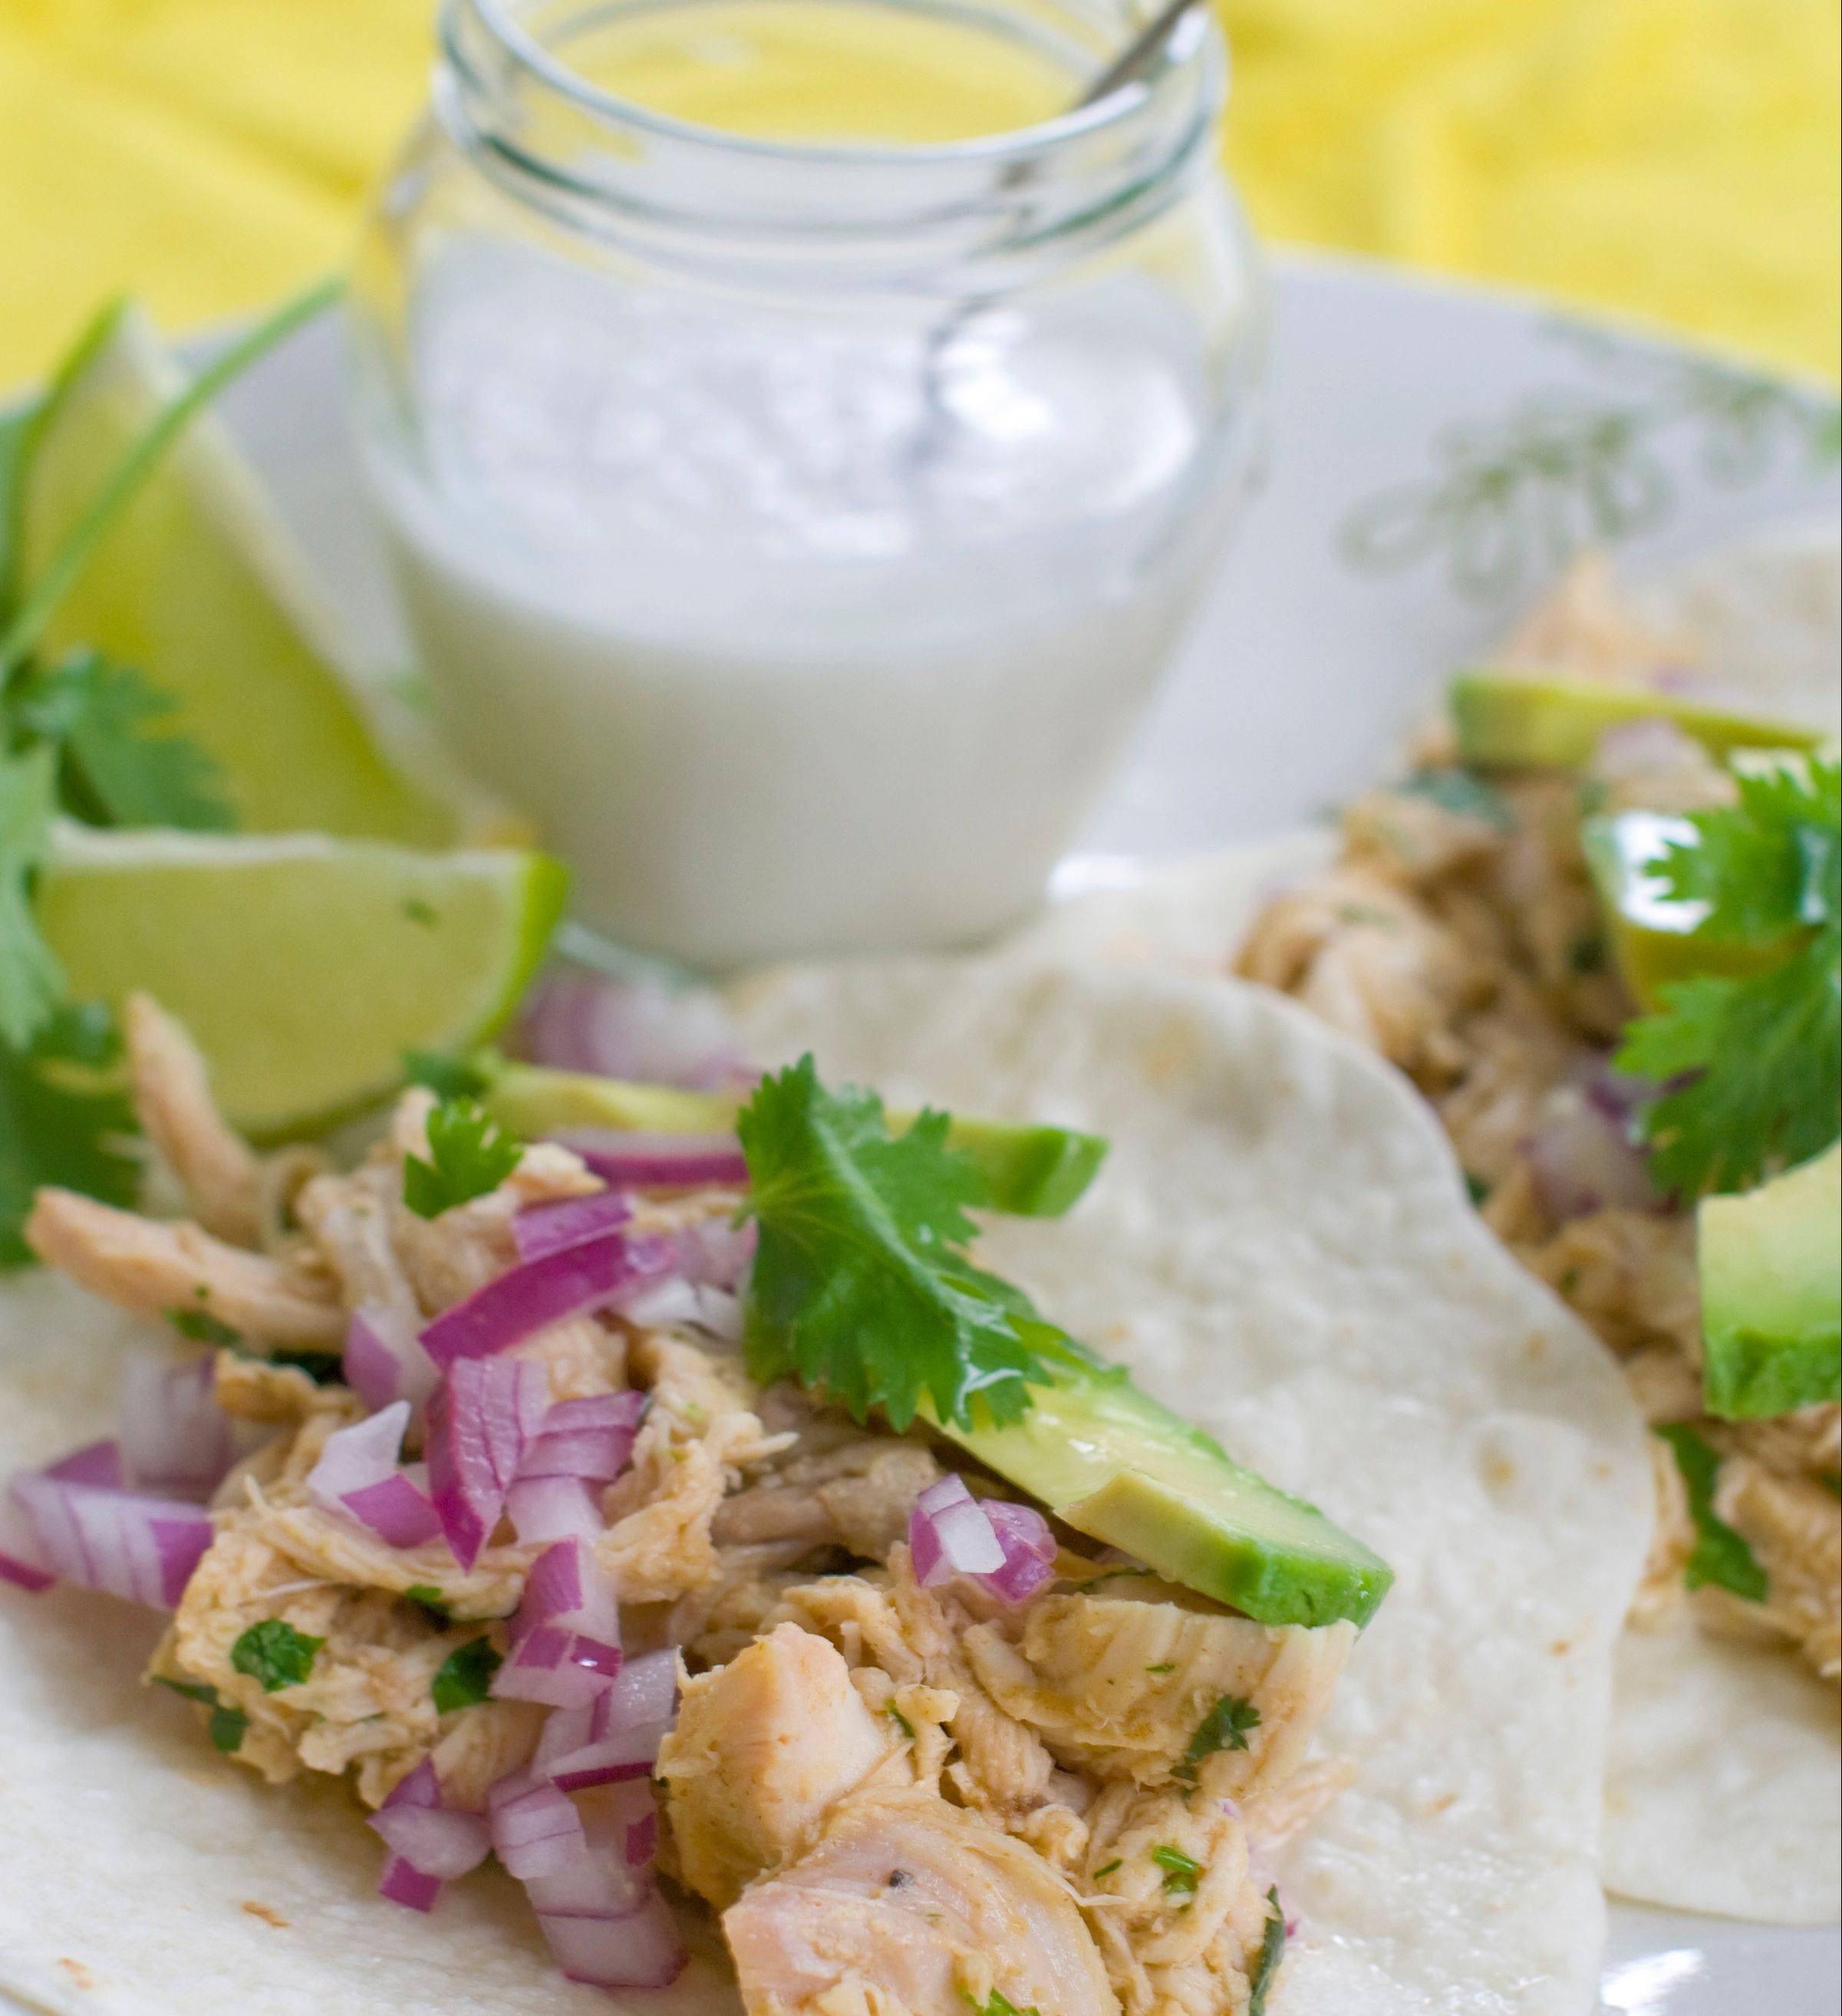 Make sure to use coconut milk, not water, for these pulled chicken tacos.